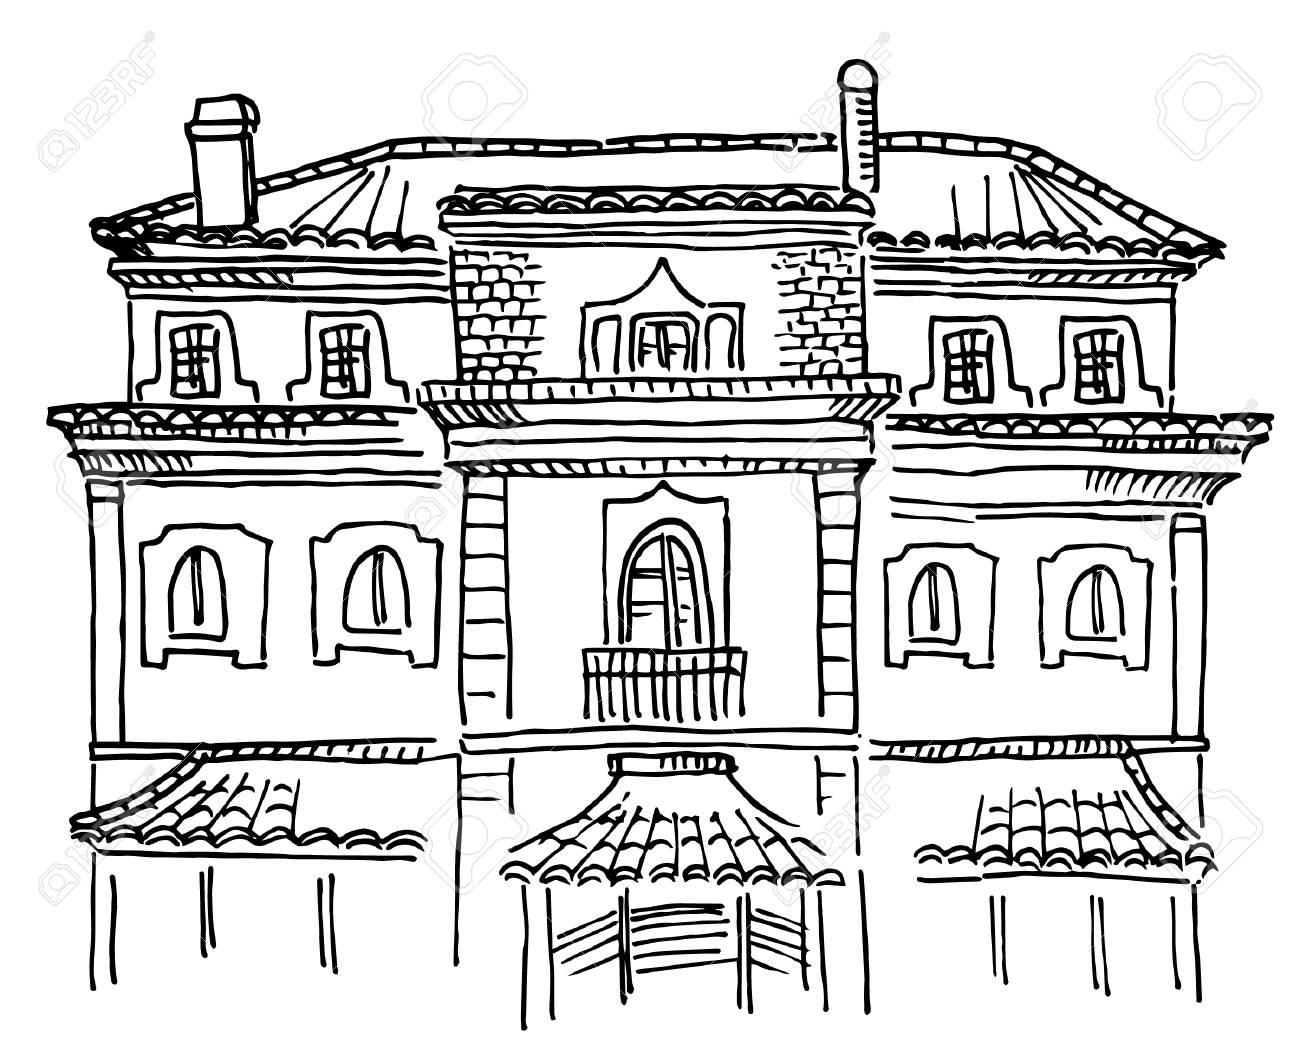 Sketch Of Portuguese House Front View Royalty Free Cliparts, Vectors on house construction, house layout design, house template, house model design, house drawing, house painting design, house art design, house design blueprint, house perspective design, house autocad, house architecture design, house graphic design, house light design, house green design, sketchup house design, green building design, house studio design, product page design, house study design, house plans with furniture layouts,